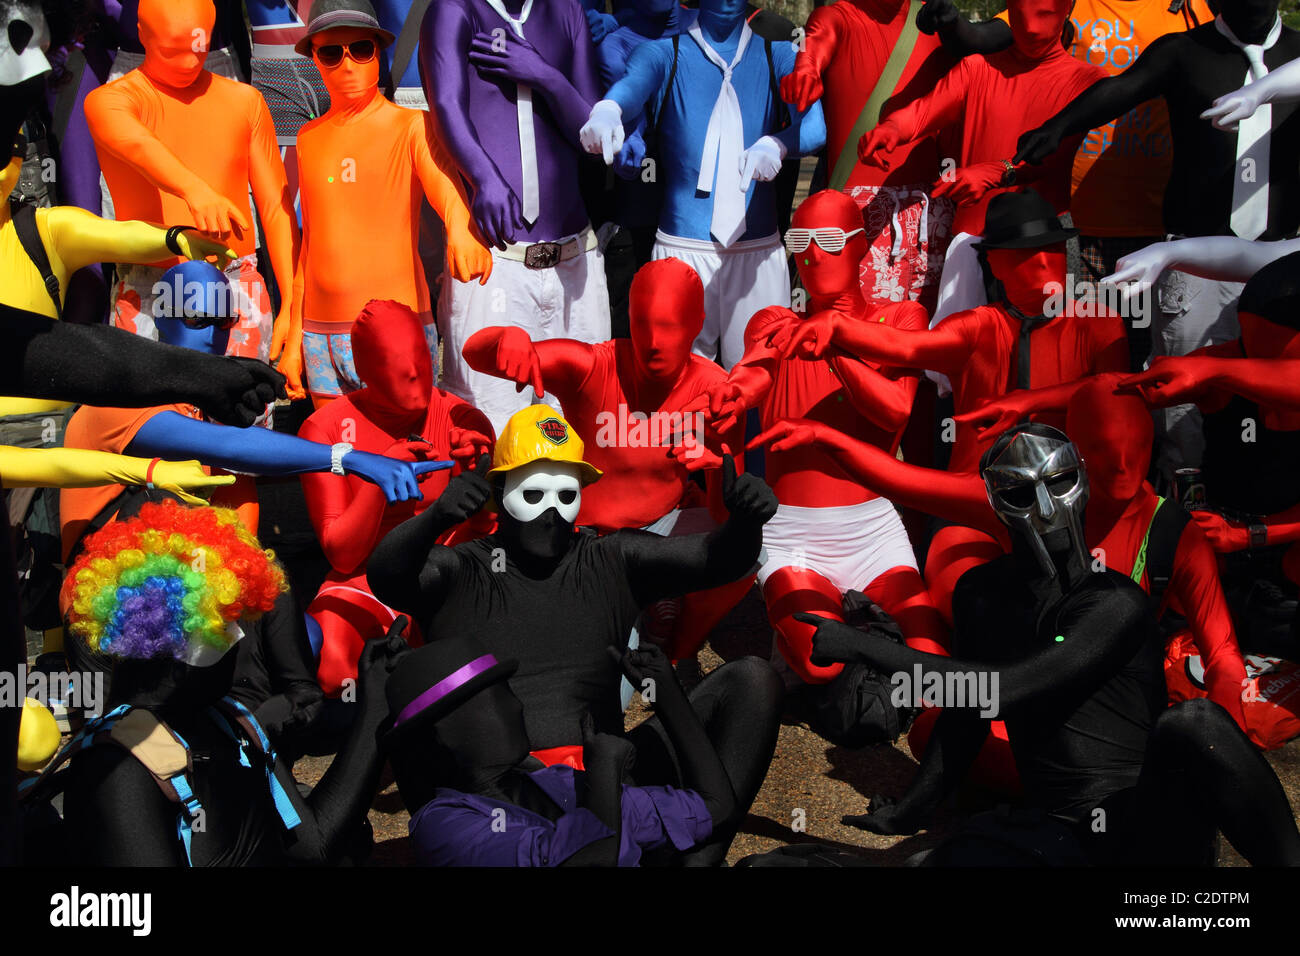 Morph costume fancy dress Immagini Stock